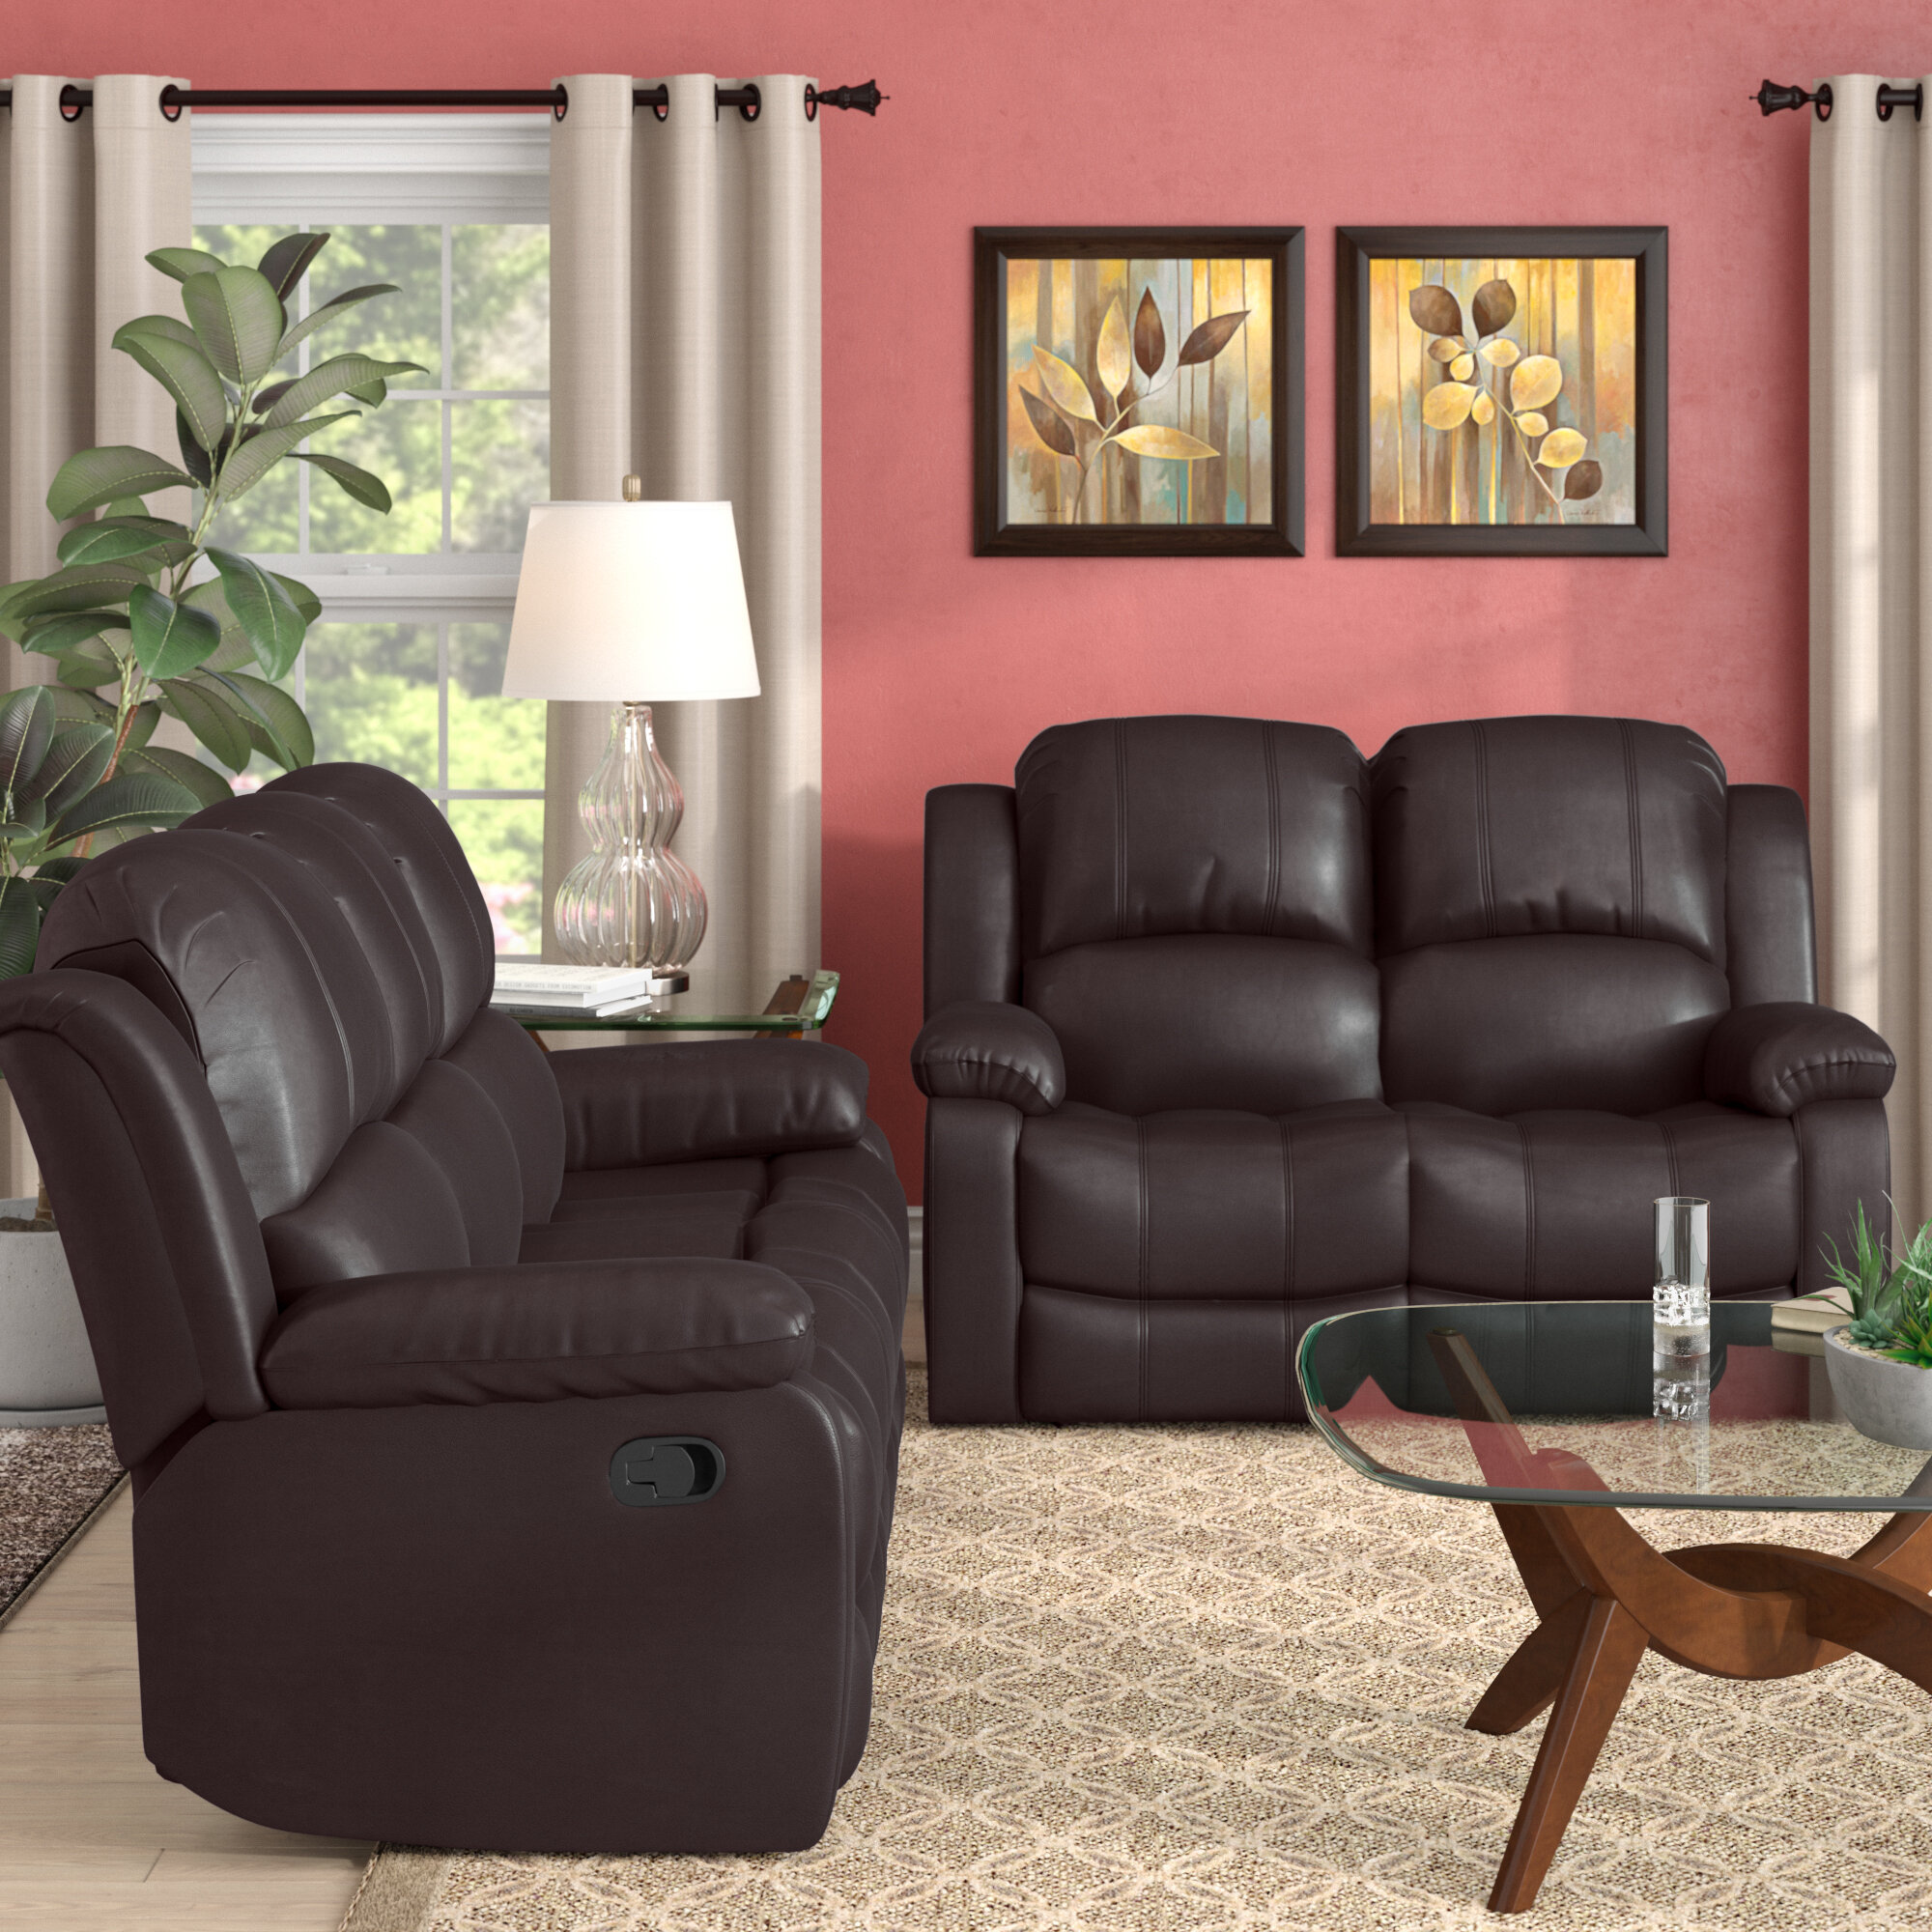 recliners leather chocolate furniture pcs reclining beige short bonded room com recliner ac plush loveseat amazon dp living motion sofa gtu set livings